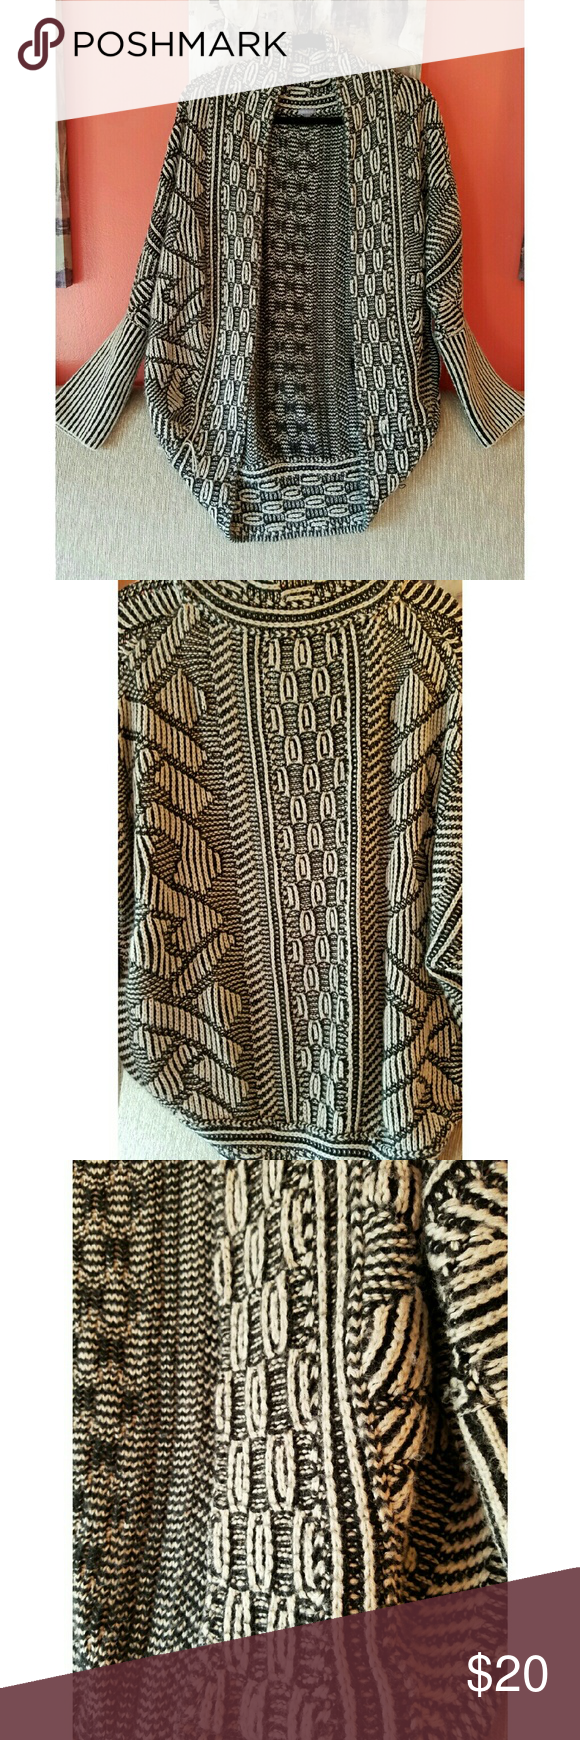 Charlotte Russe Cardigan Dress up those comfy tights with this cardi for a stylish look, Cable Knit, comfy and cozy, Aztec looking design, overall just way too cute, great condition, 100% Acrylic Charlotte Russe Sweaters Cardigans